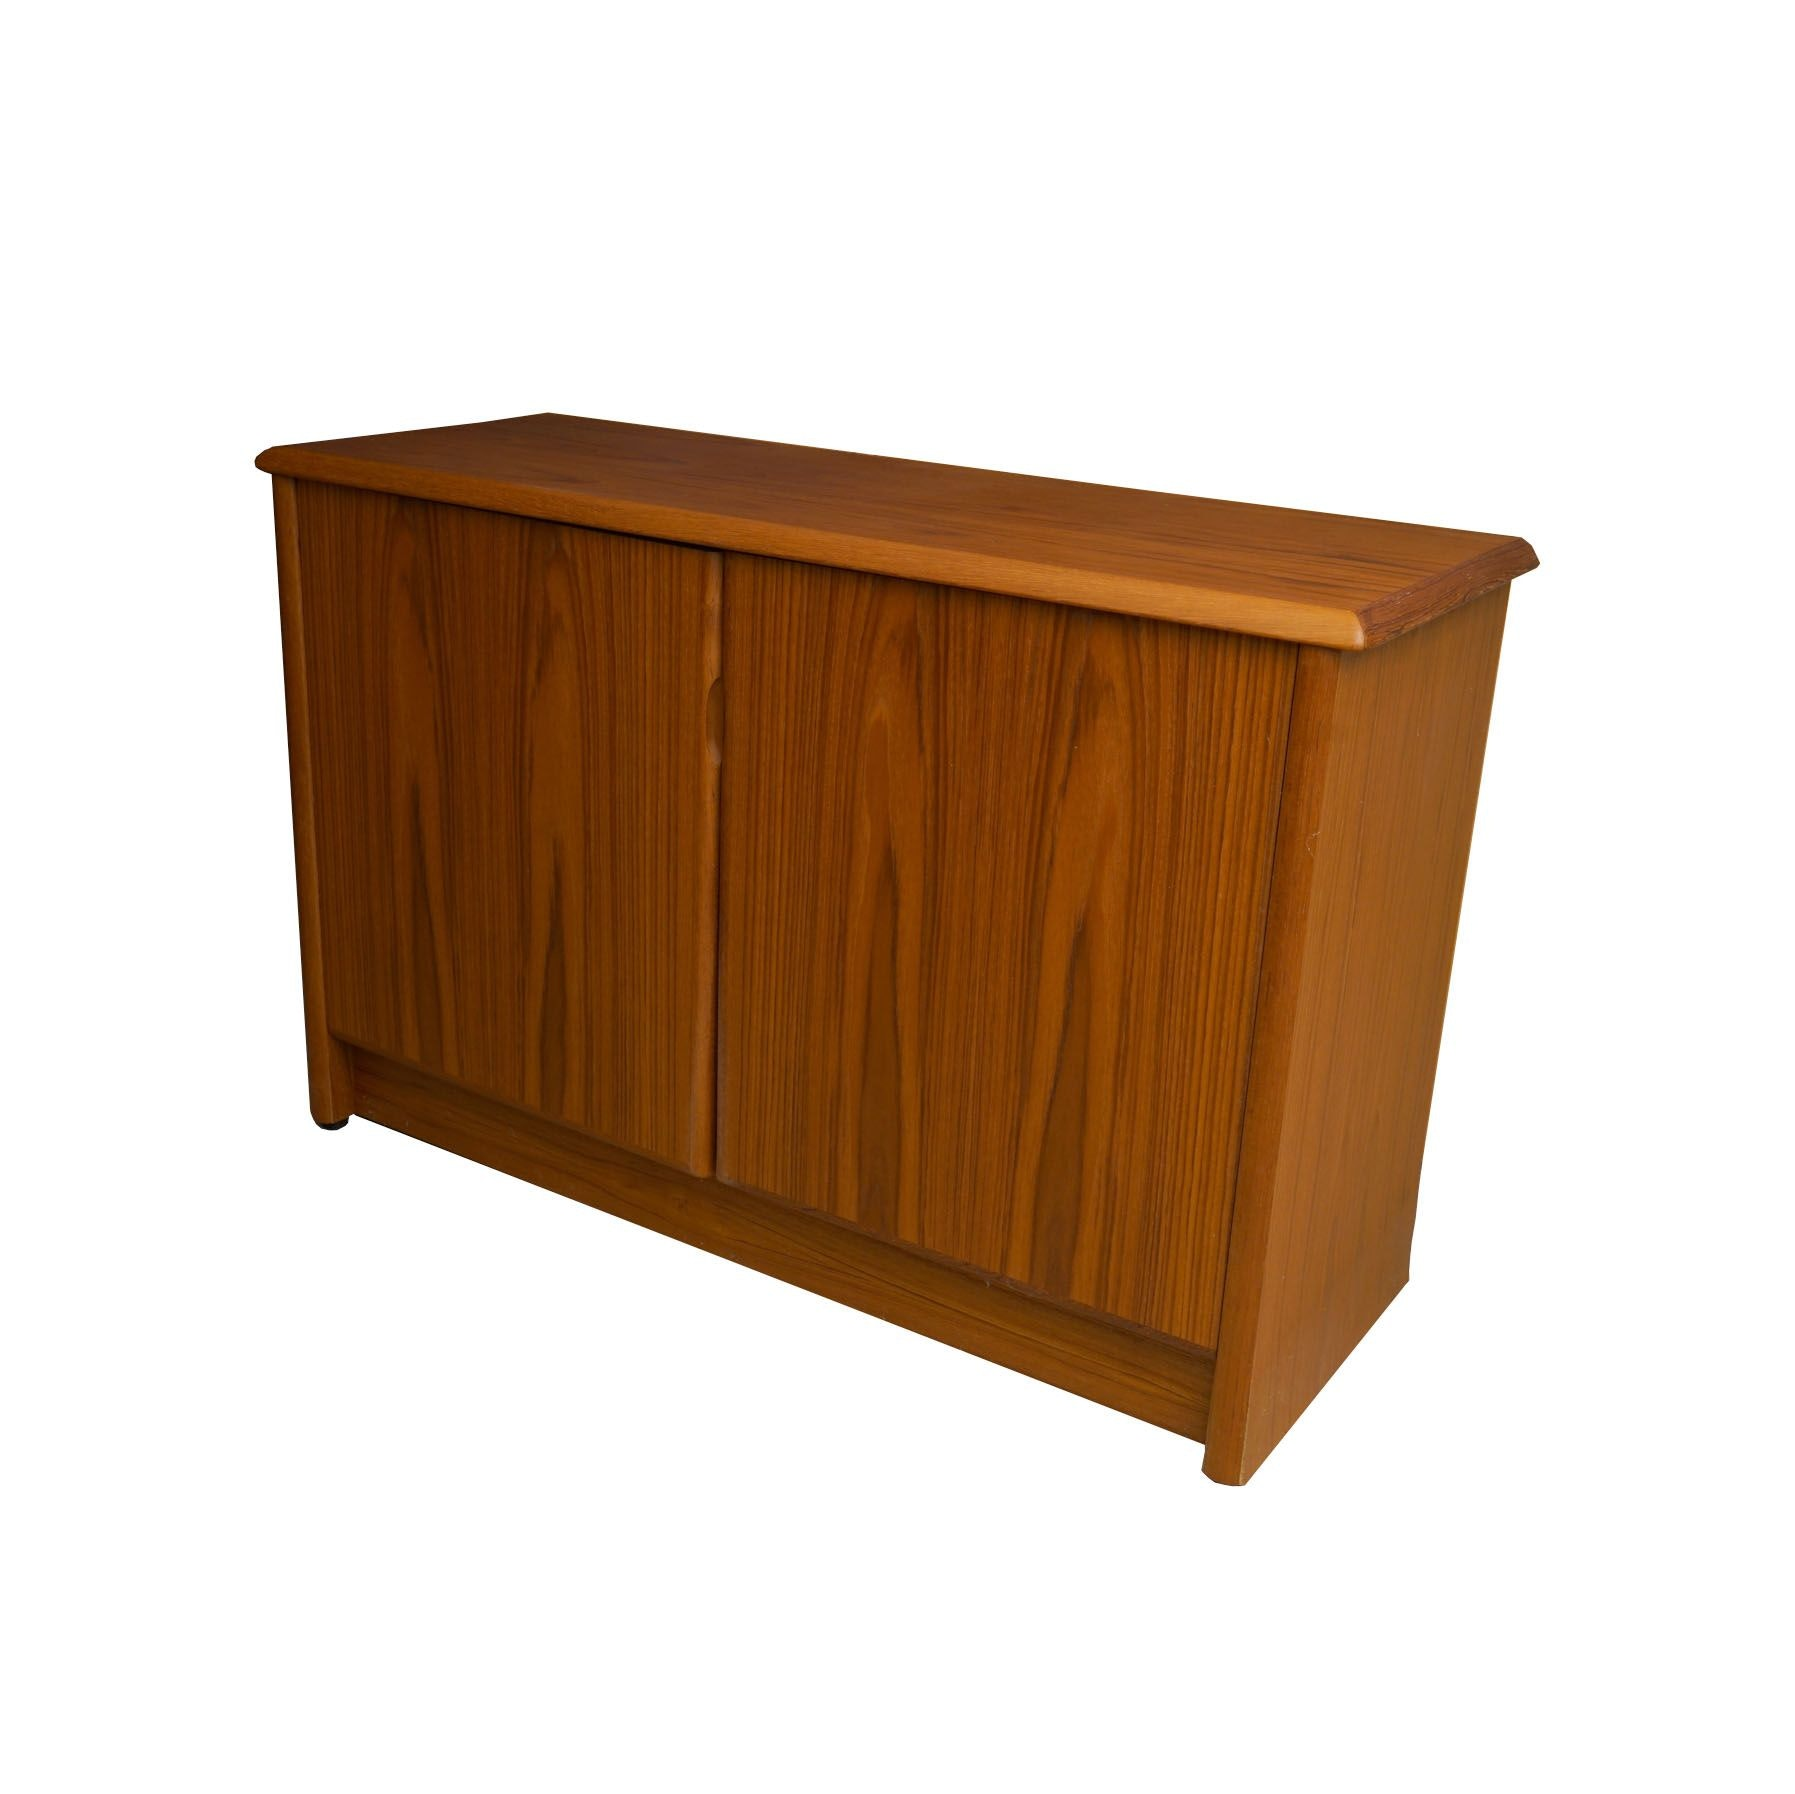 Danish Modern Teak Sideboard by Nordic Furniture, Mid to Late 20th Century